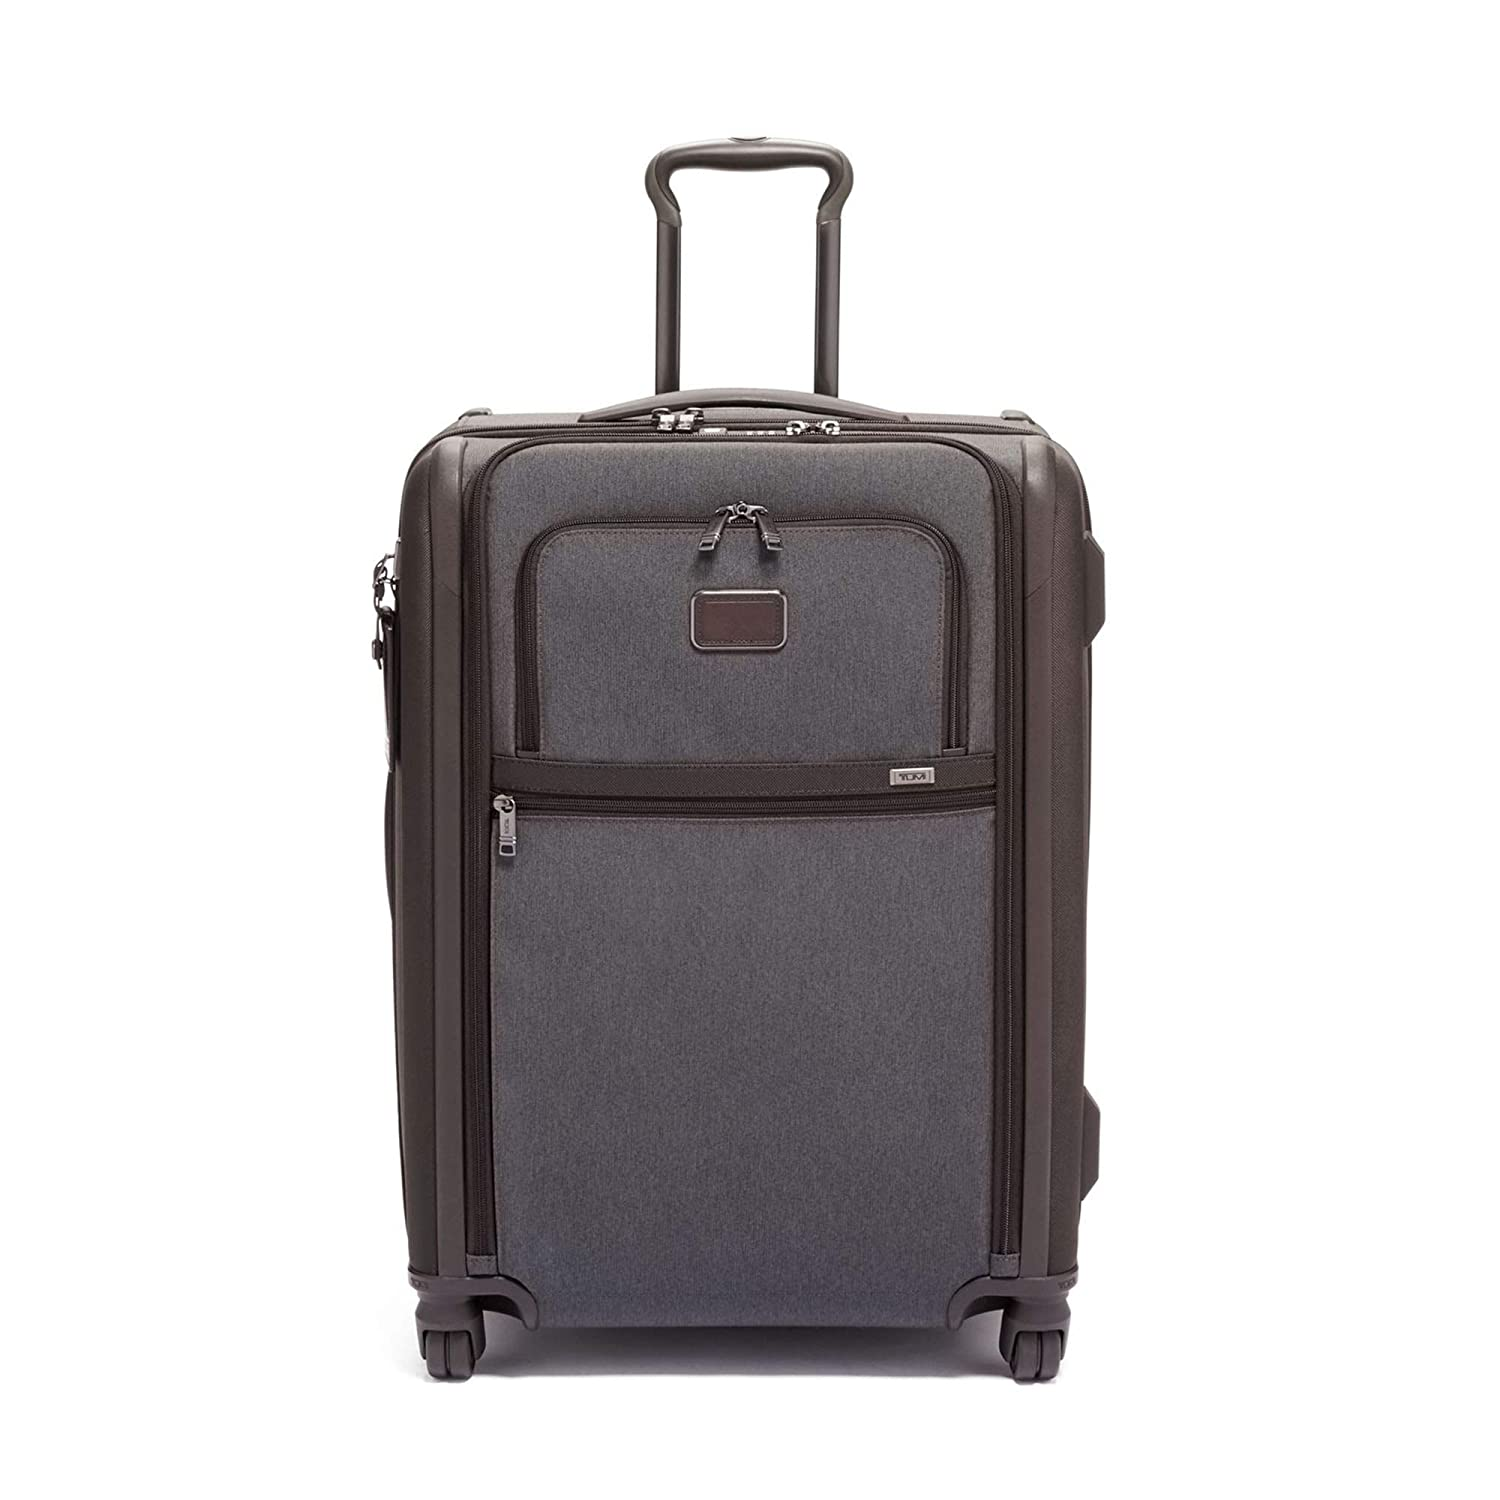 c820ad342100 TUMI - Alpha 3 Short Trip Expandable 4 Wheeled Packing Case Suitcase -  Rolling Luggage for Men and Women - Anthracite